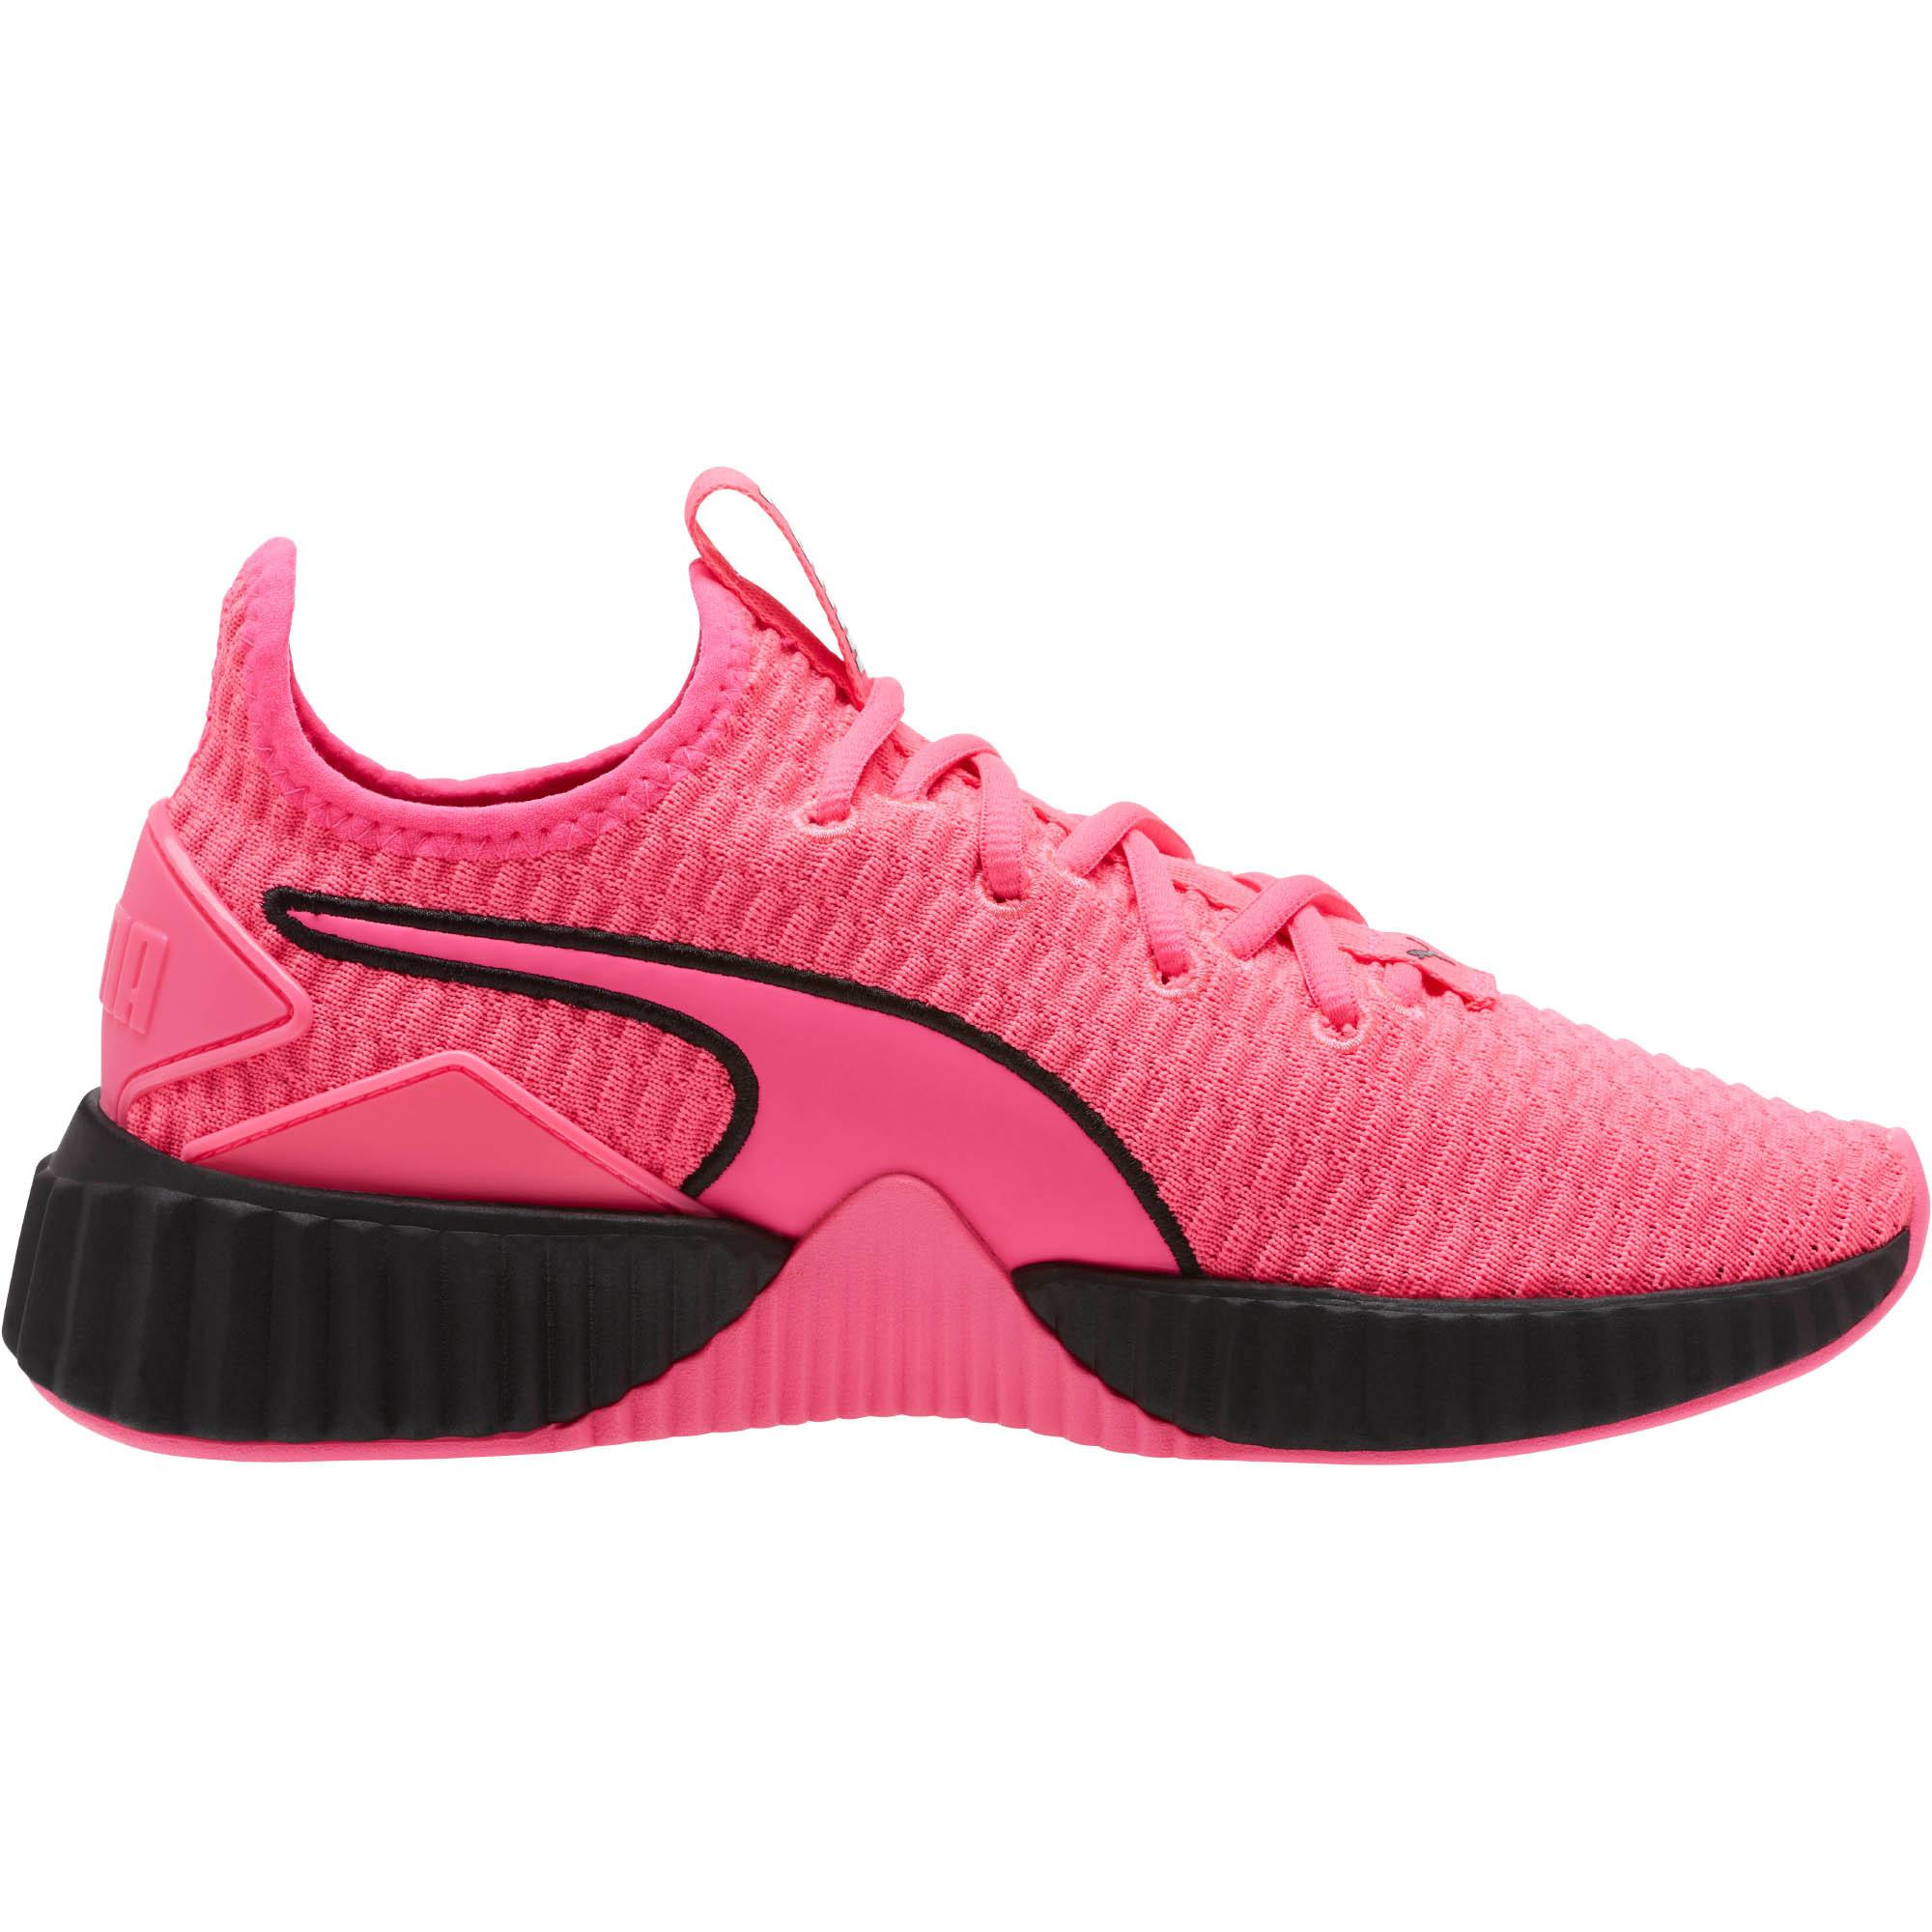 PUMA Defy Women's Sneakers Color KNOCKOUT PINK Puma Black